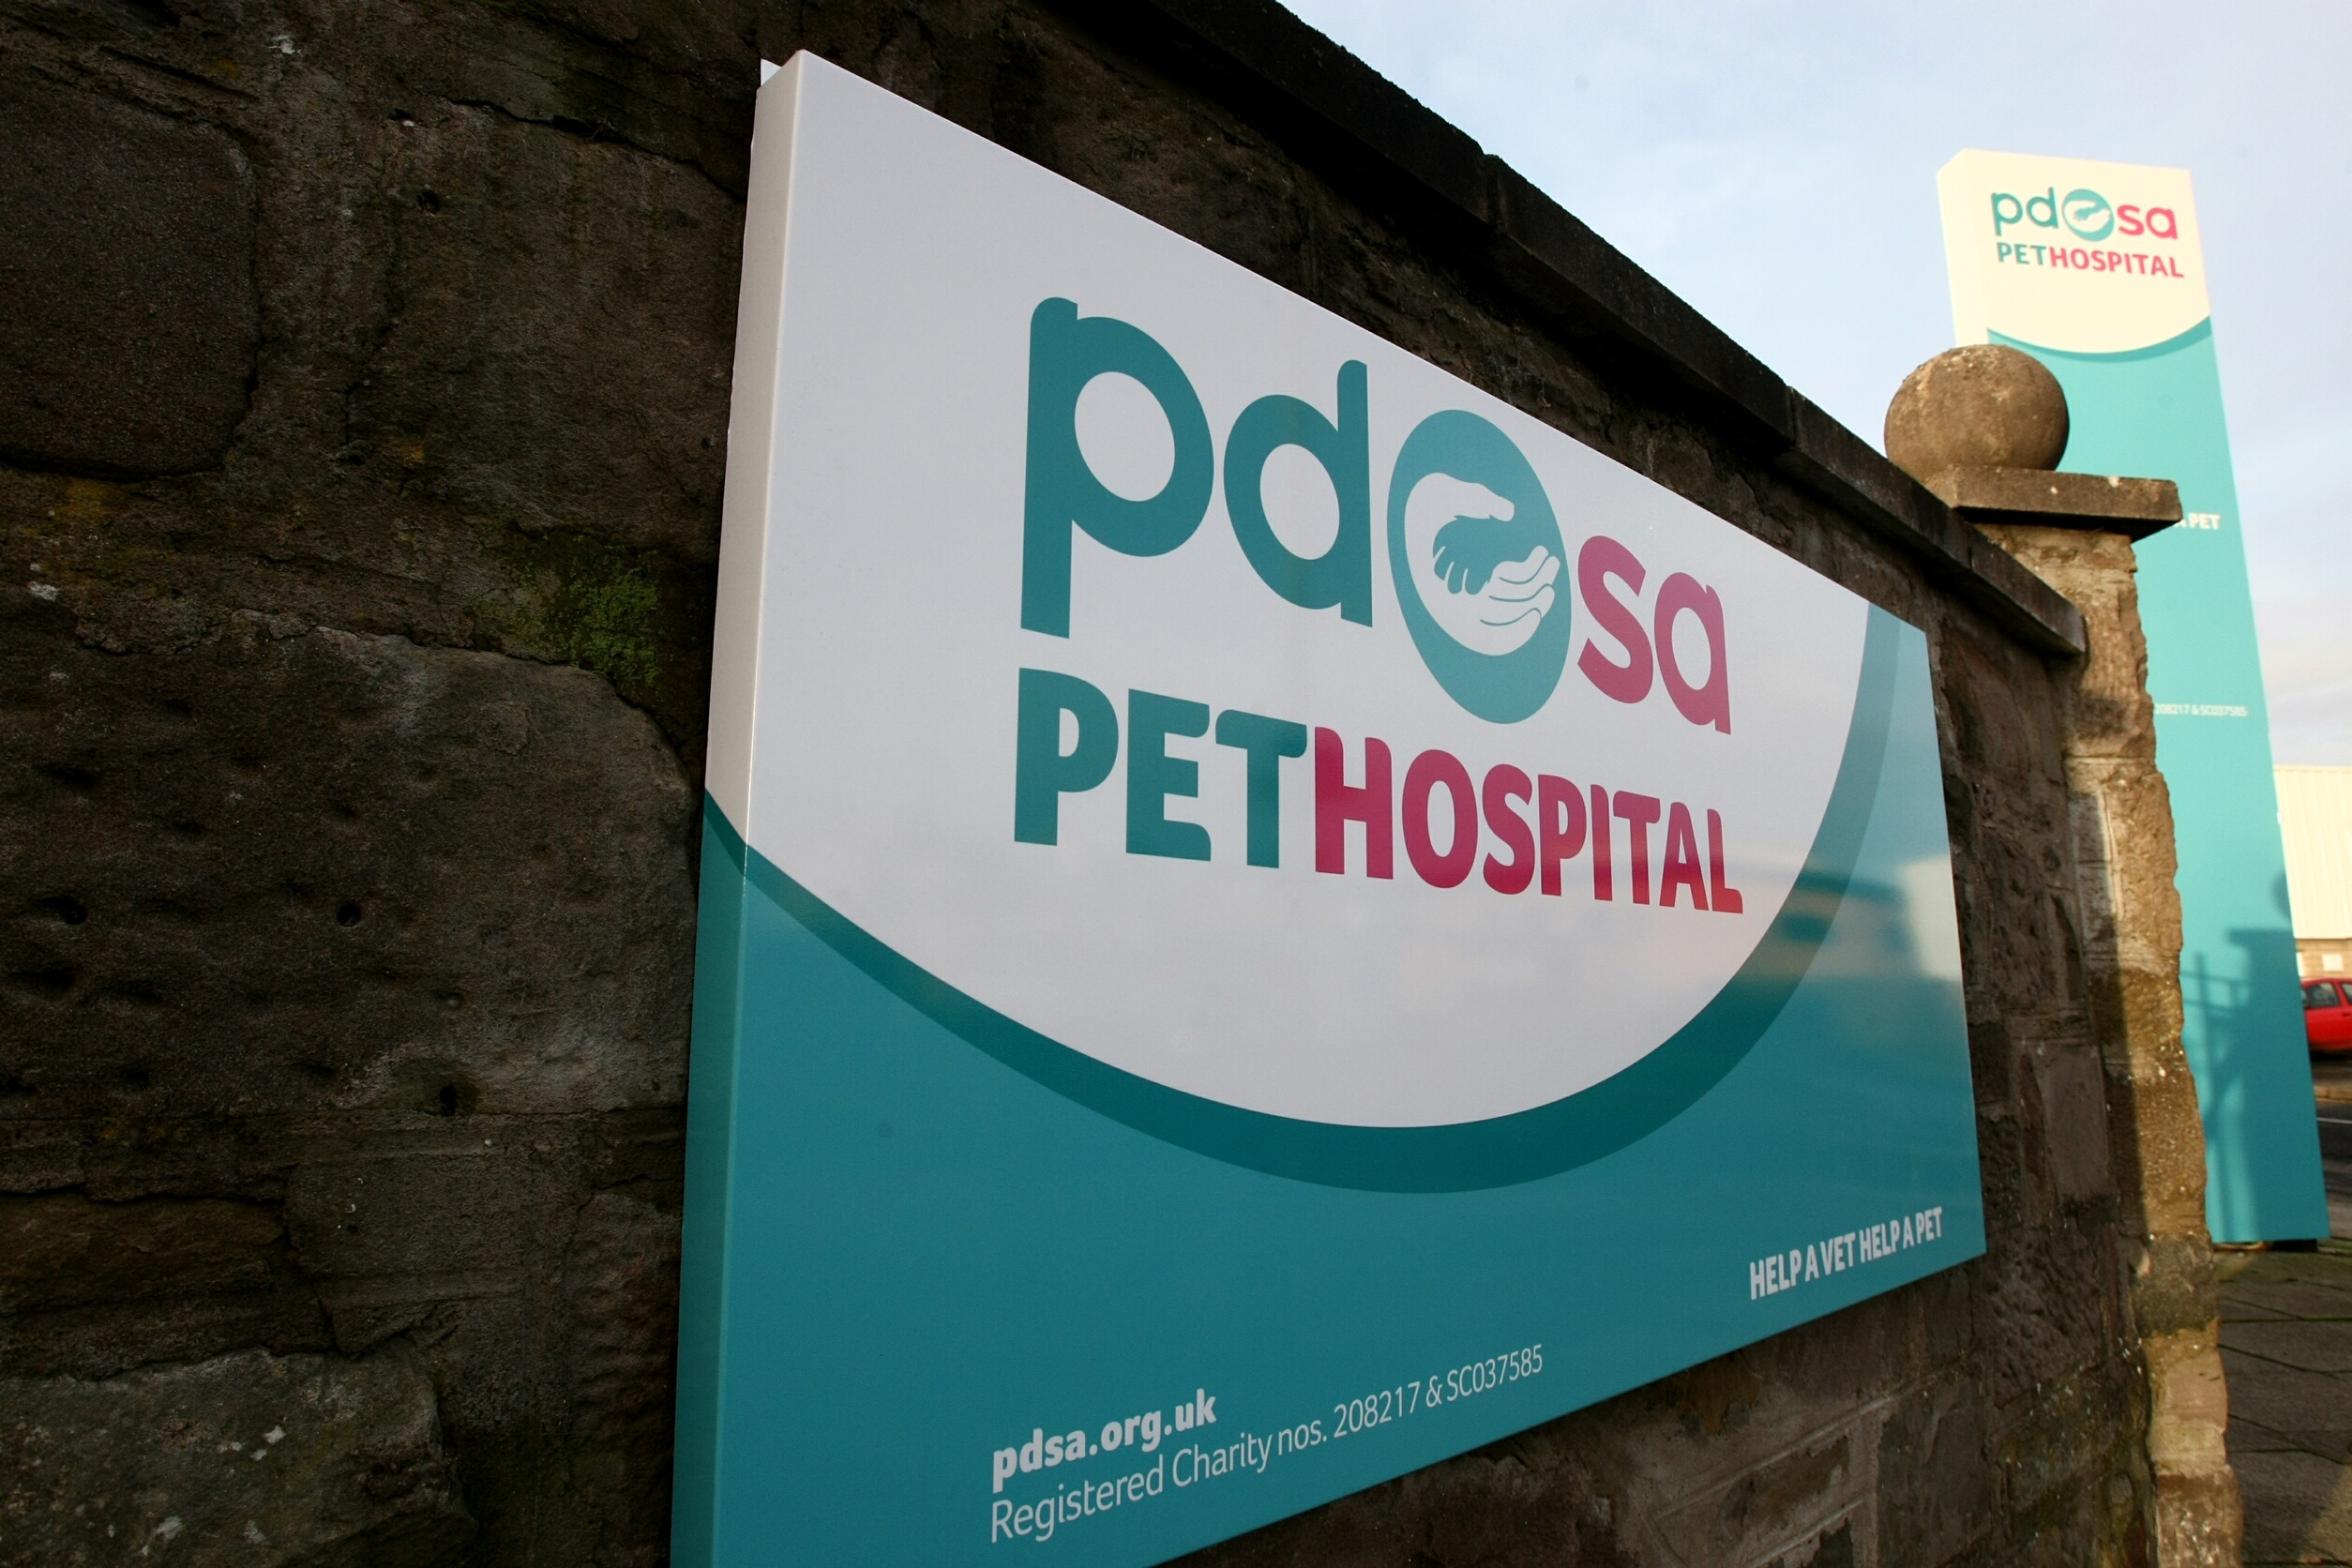 PDSA say there have been 6 poisonings in the last 18 months in Kirkton